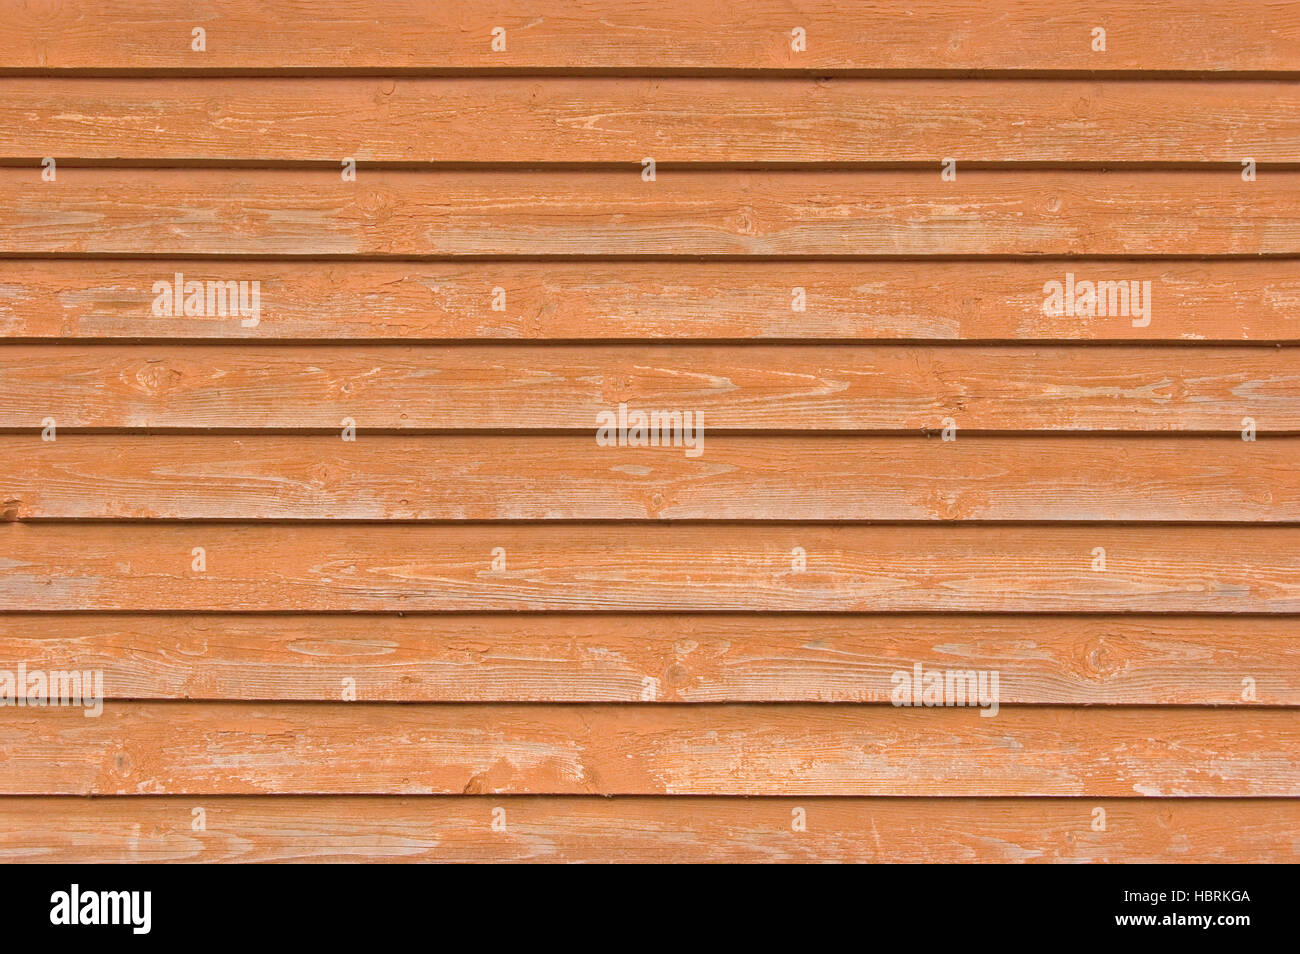 Natural old wood fence planks, wooden close board texture, overlapping light reddish brown horizontal closeboard - Stock Image